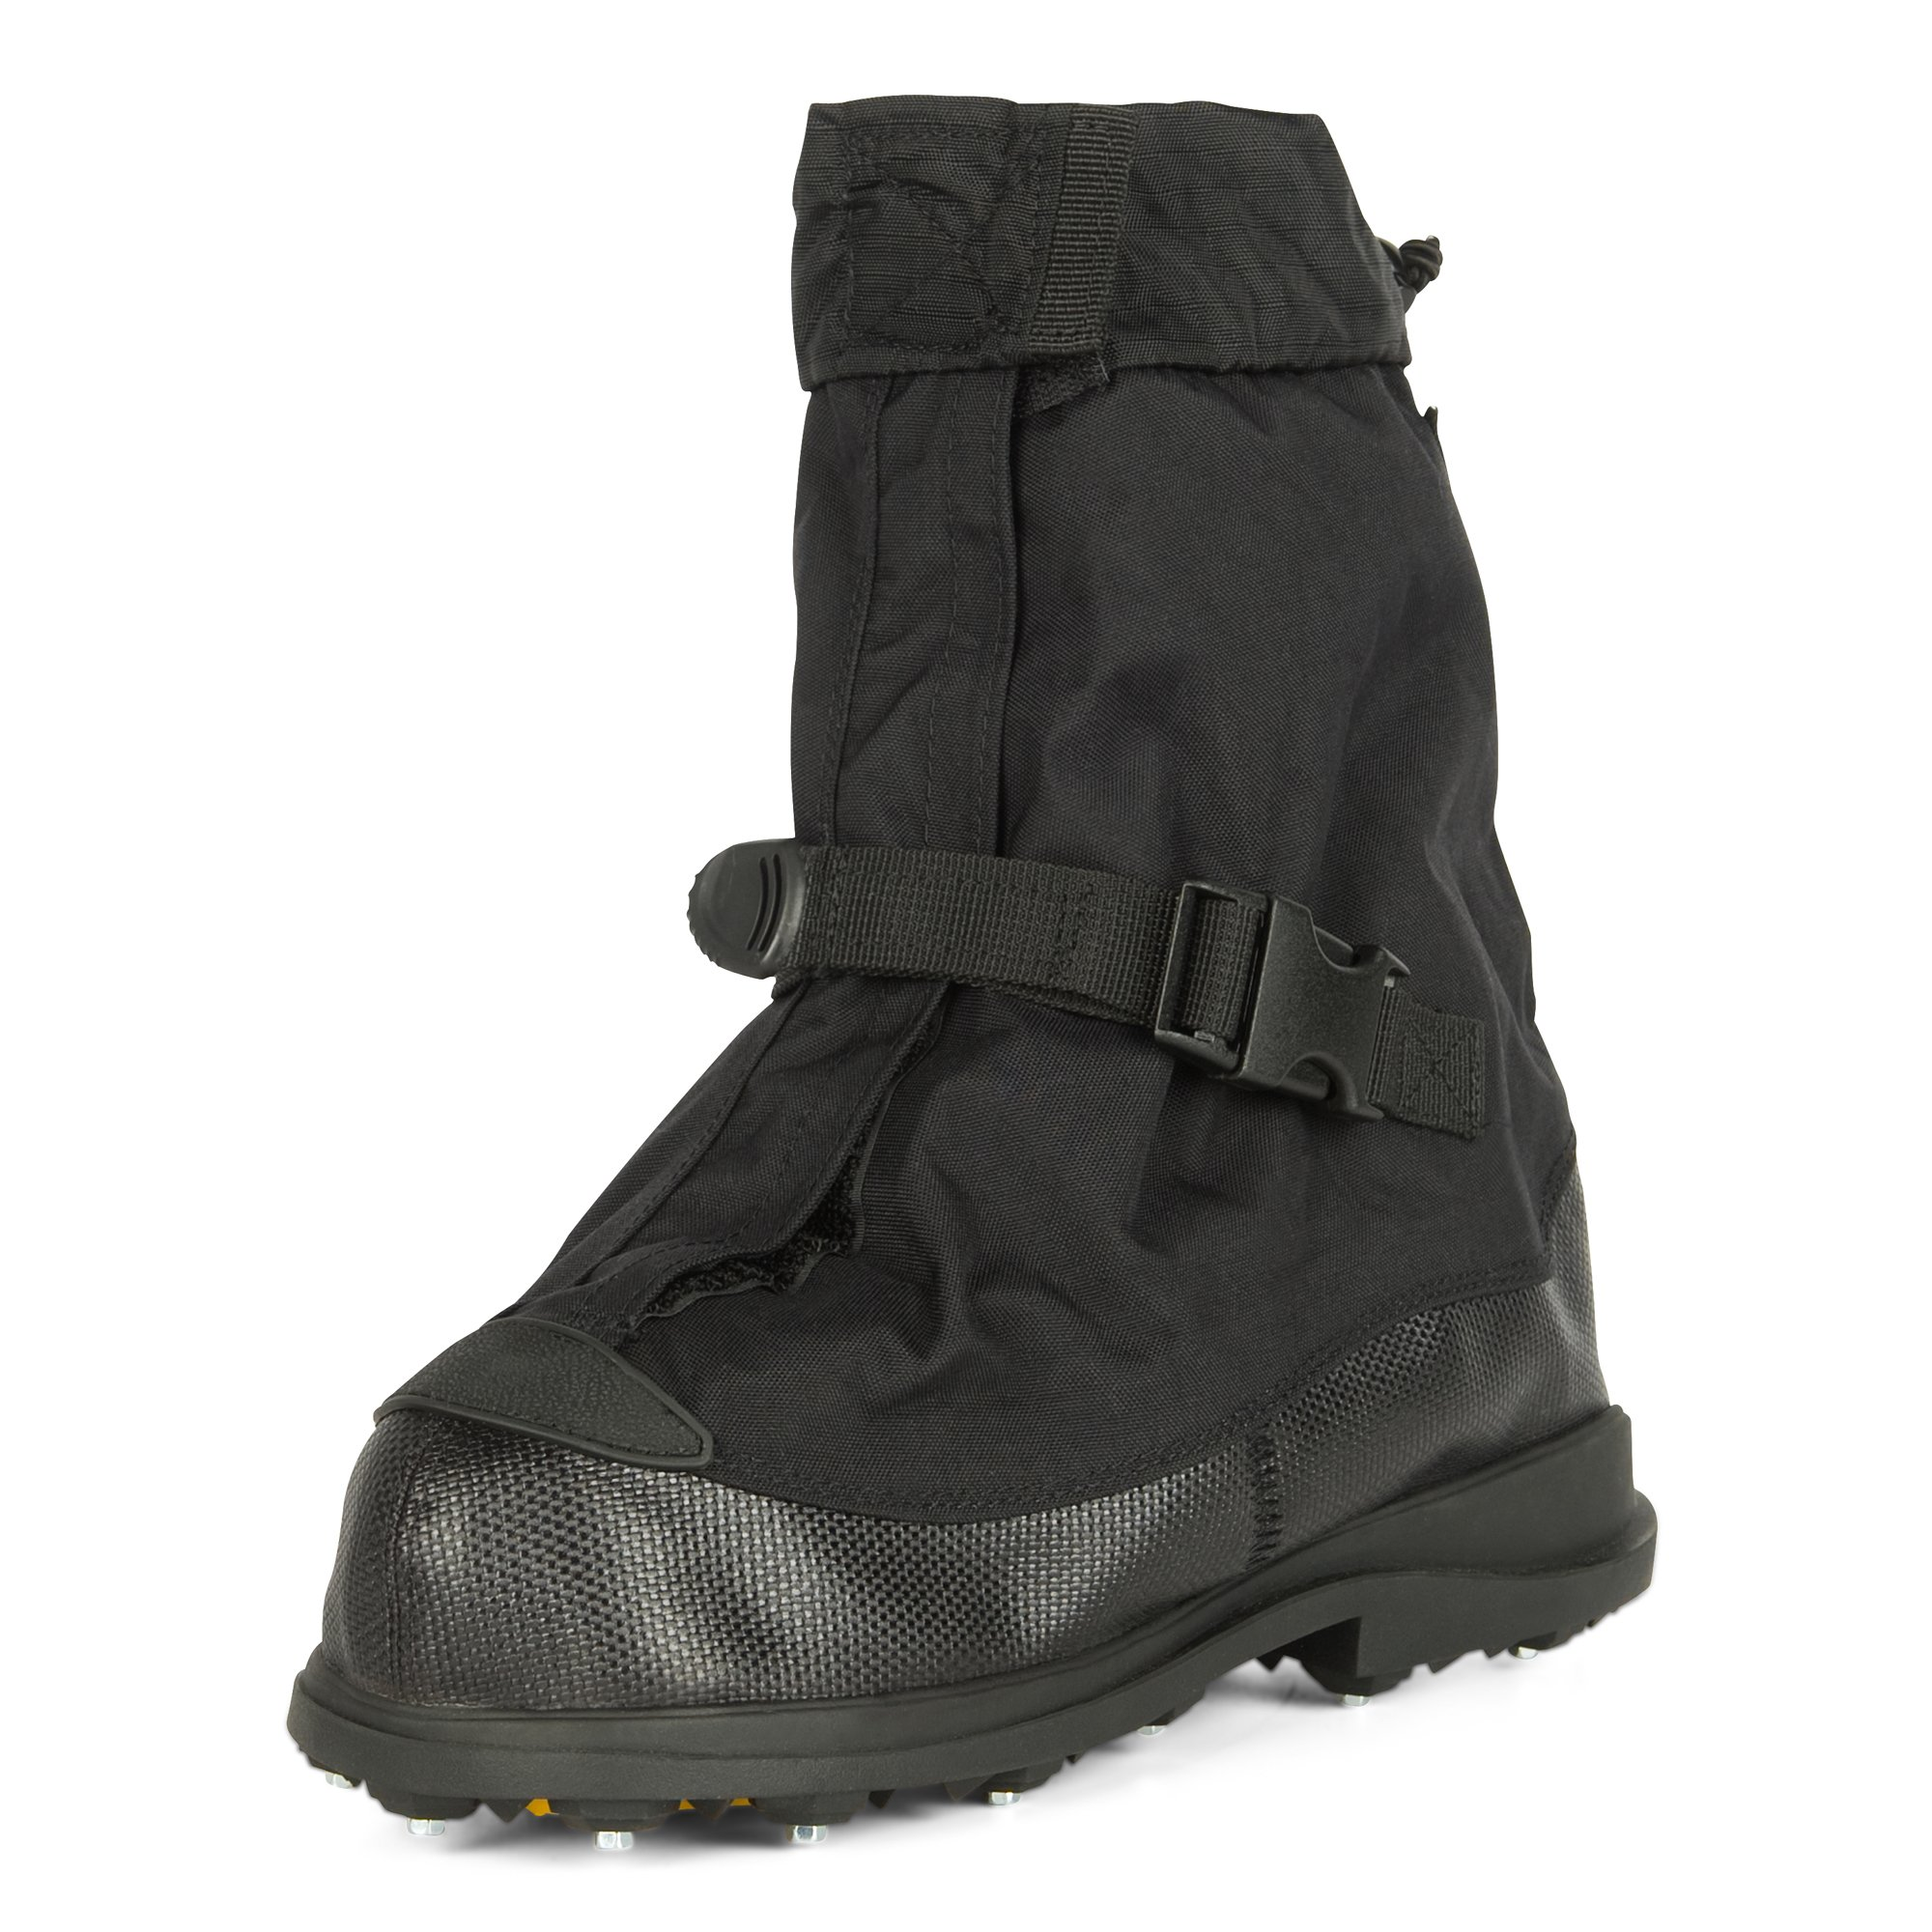 NEOS 11'' Voyager Slip Resistant Waterproof Overshoes with Heel & STABILicers Outsole (VNS1HEEL)